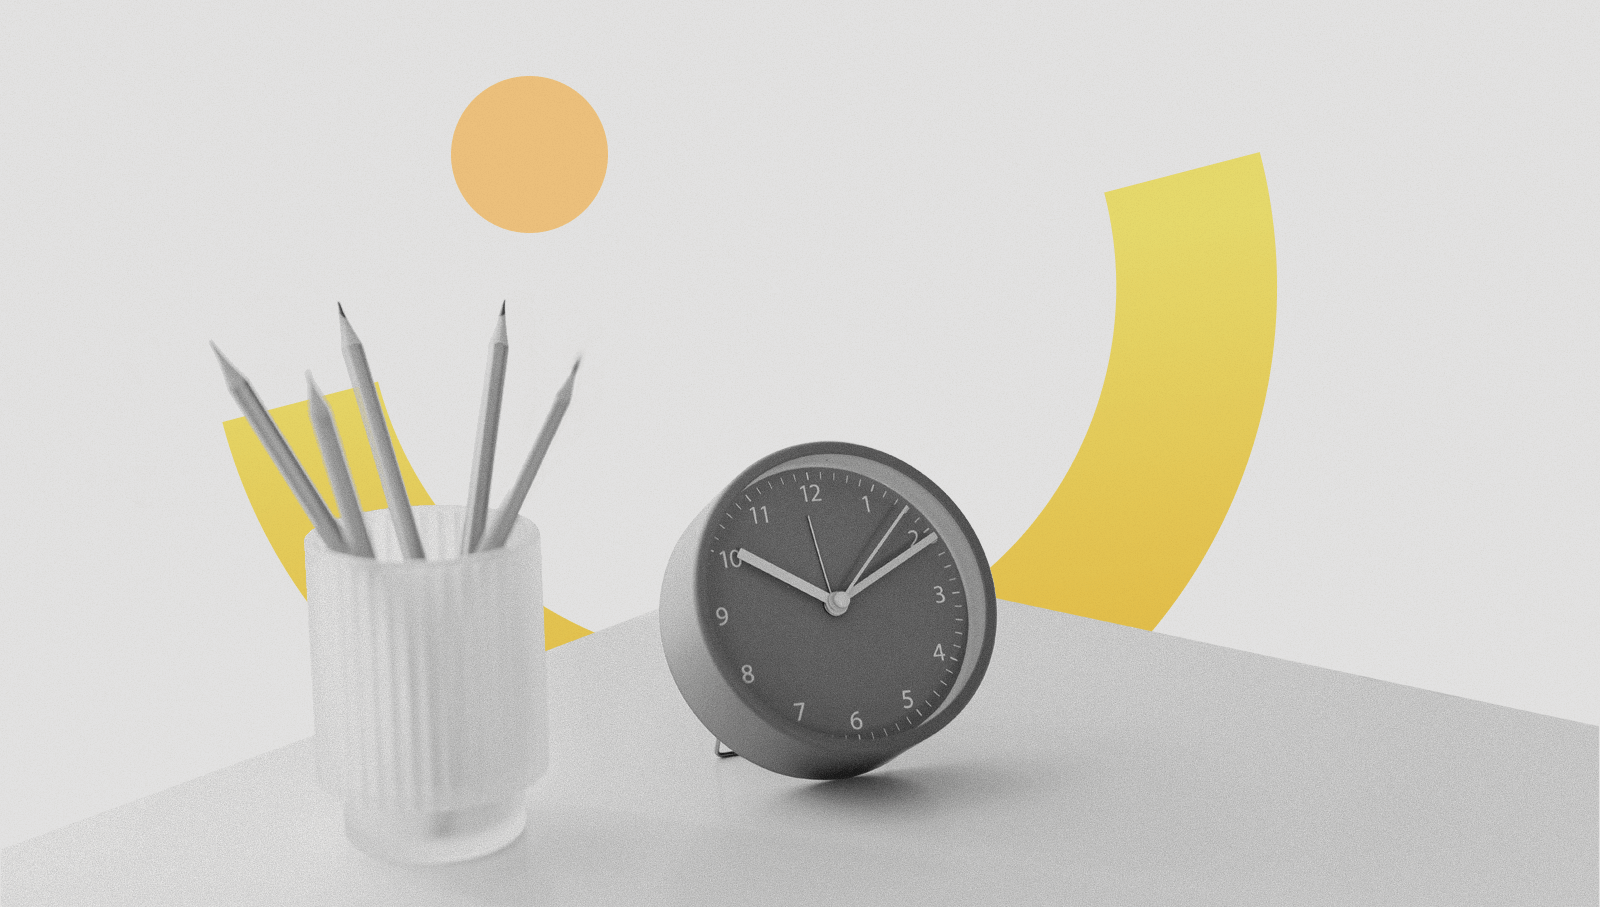 Serenity: Getting Things Done is the Key to Stress-Free Productivity